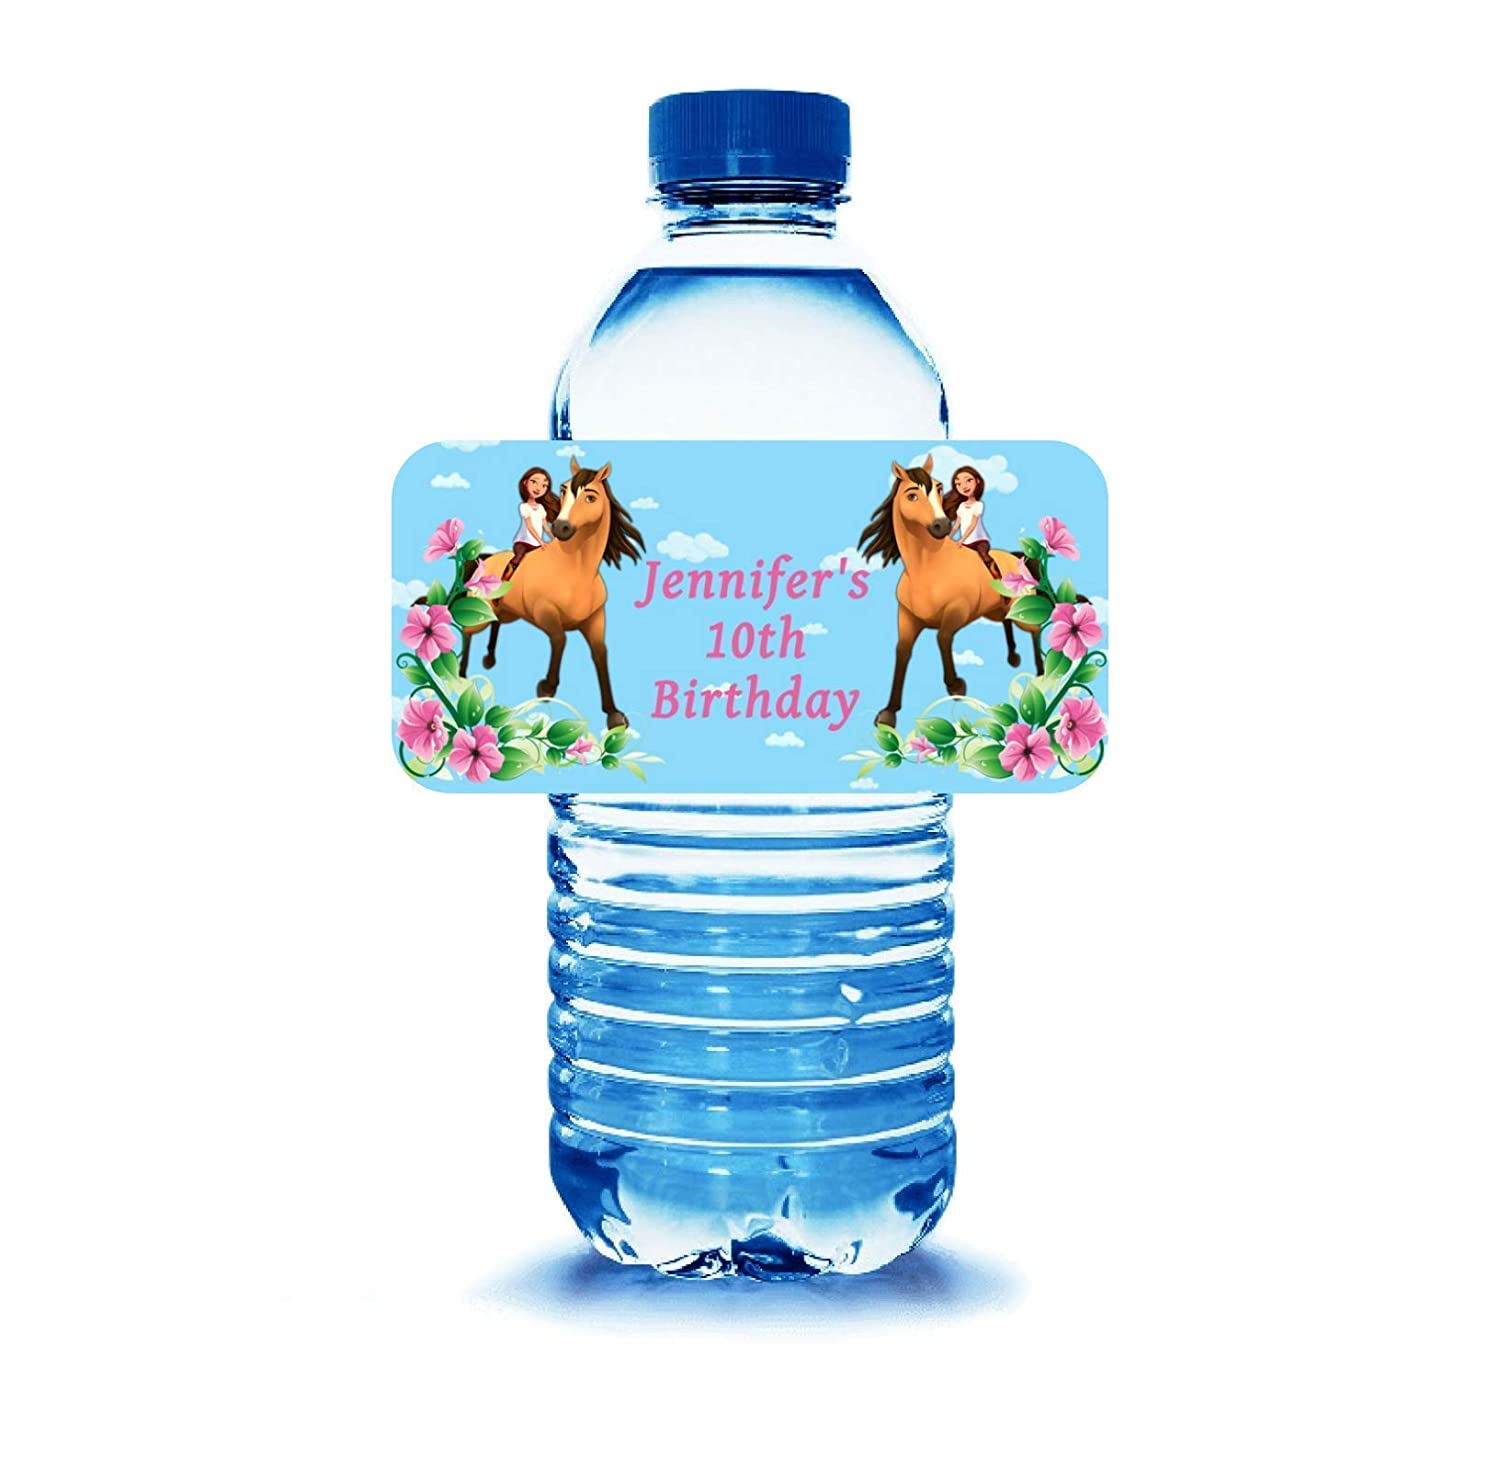 PARTY WATERBOTTLE LABELPARTY WATER STICKERSCUSTOM STICKERS FOR BOTTLE